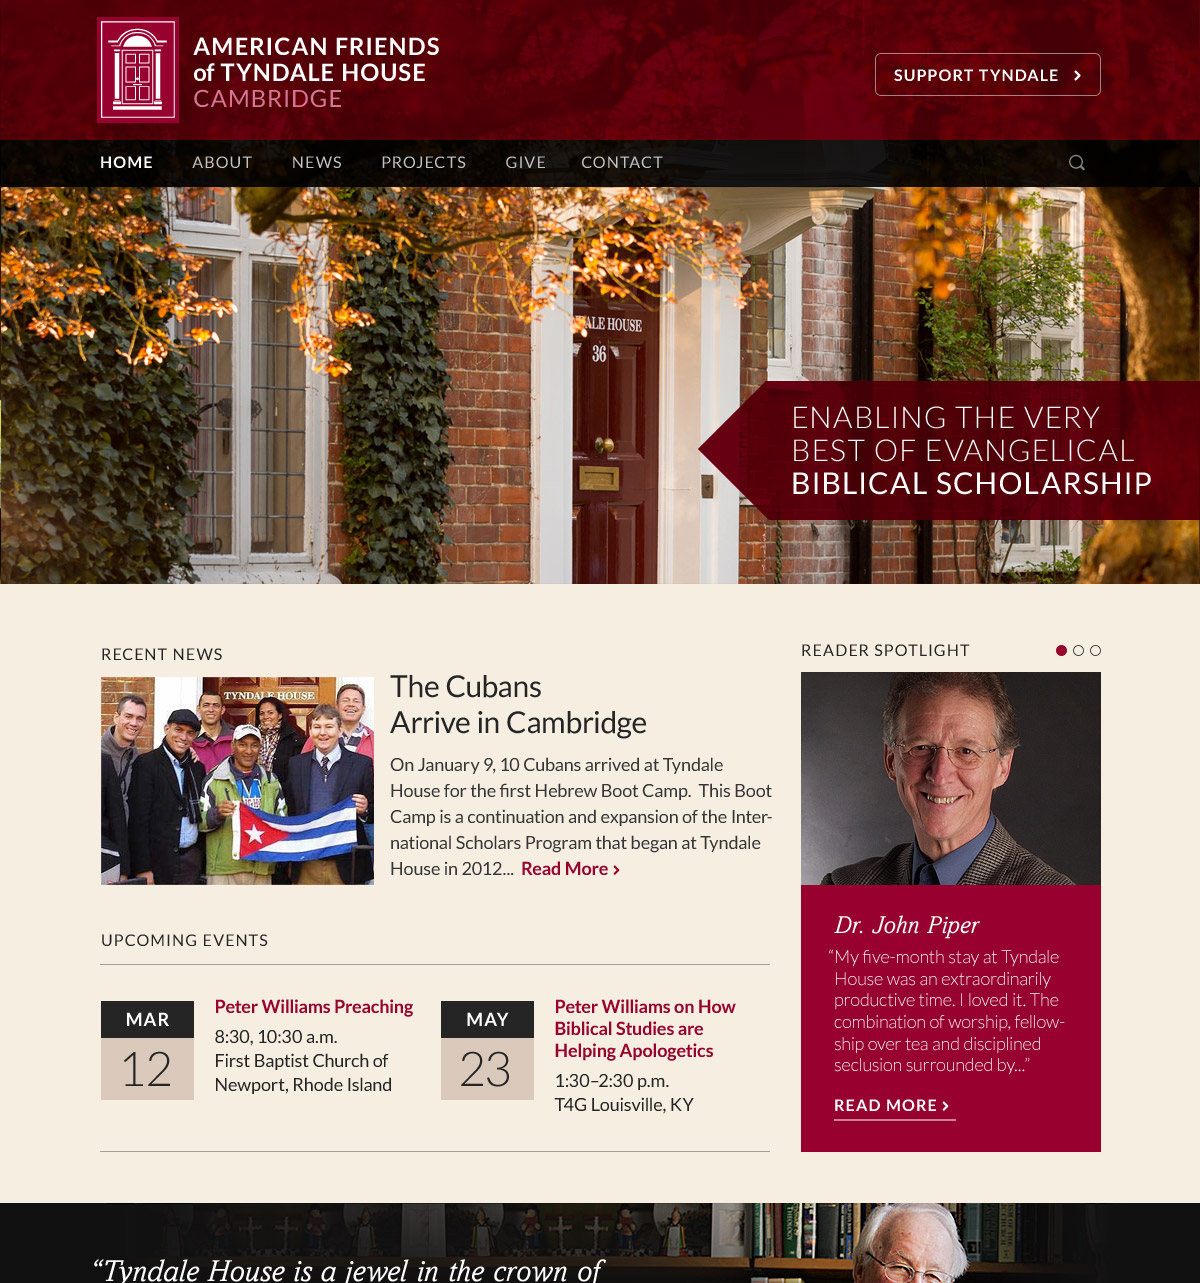 The new website for American Friends of Tyndale House